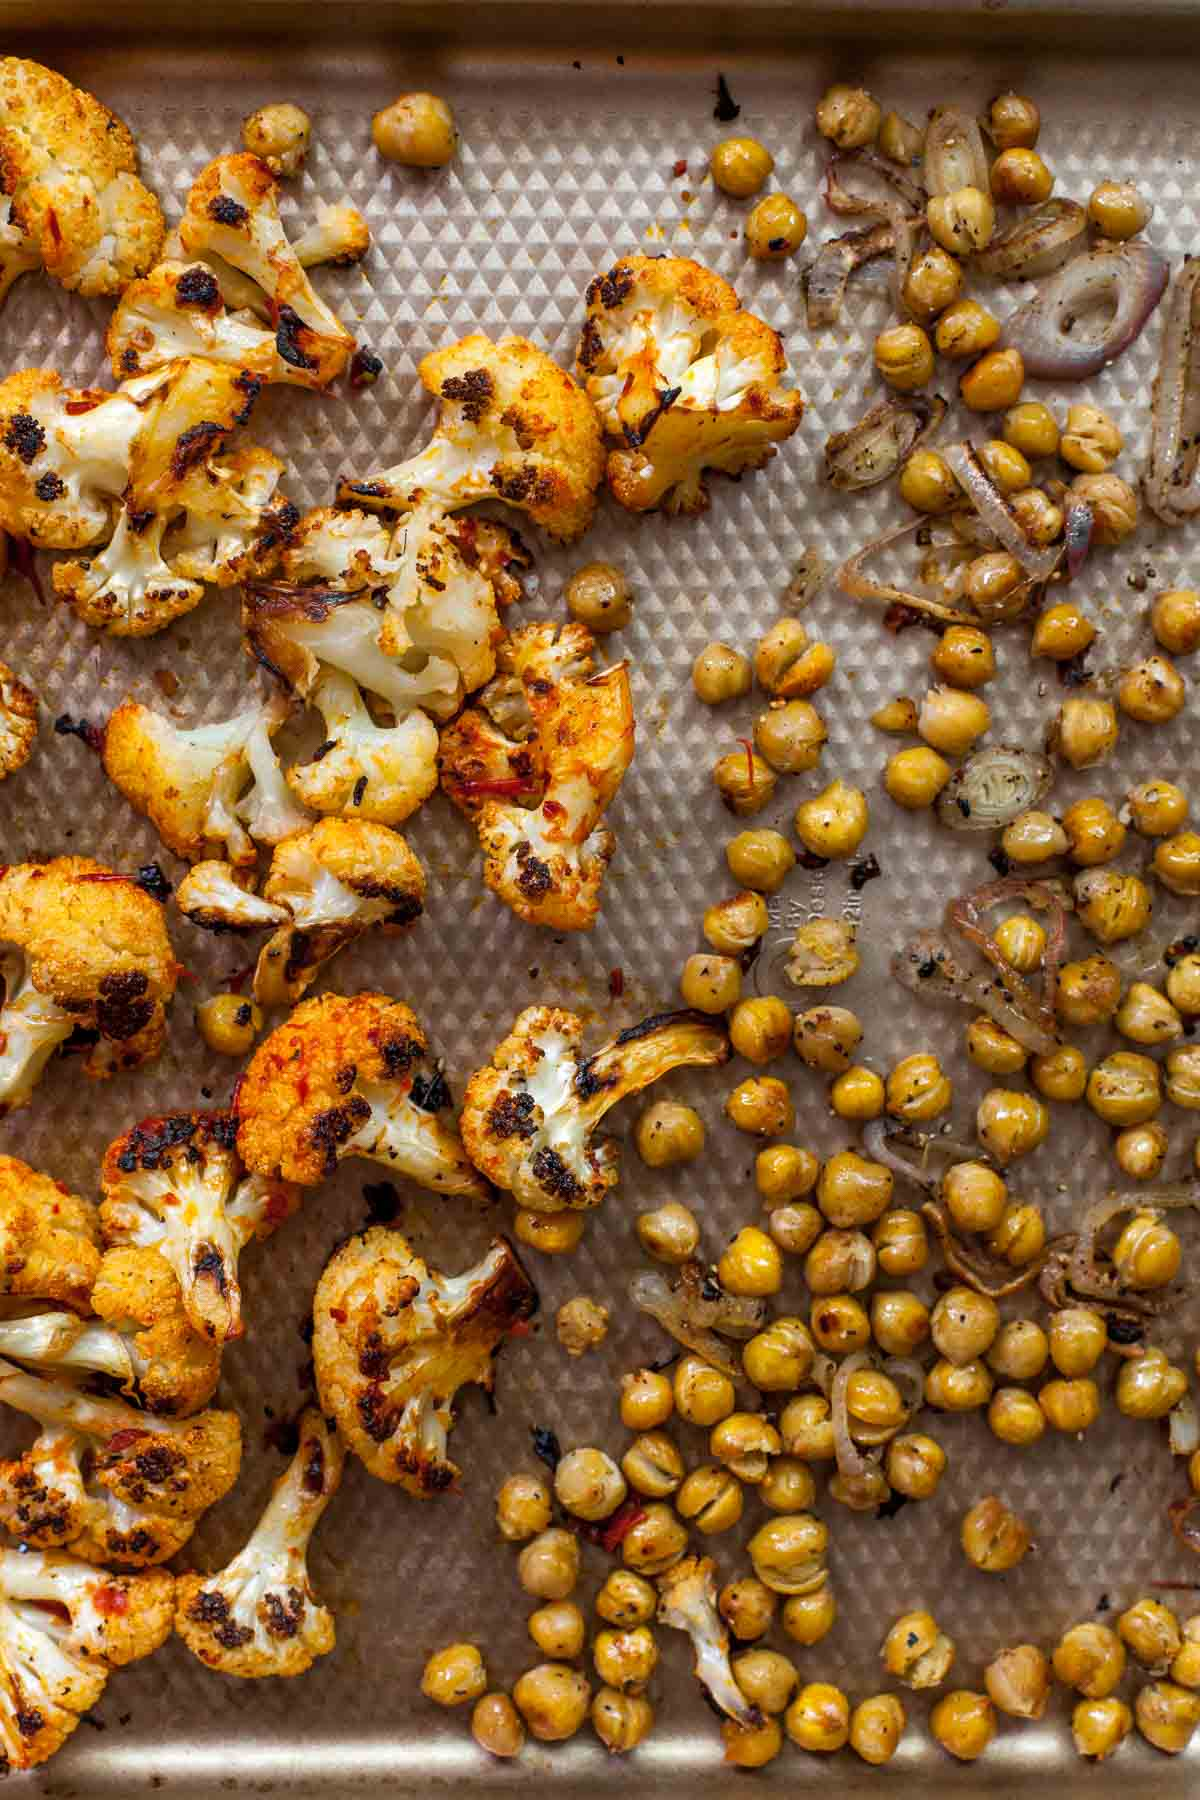 Roasted cauliflower and chickpeas on a baking sheet